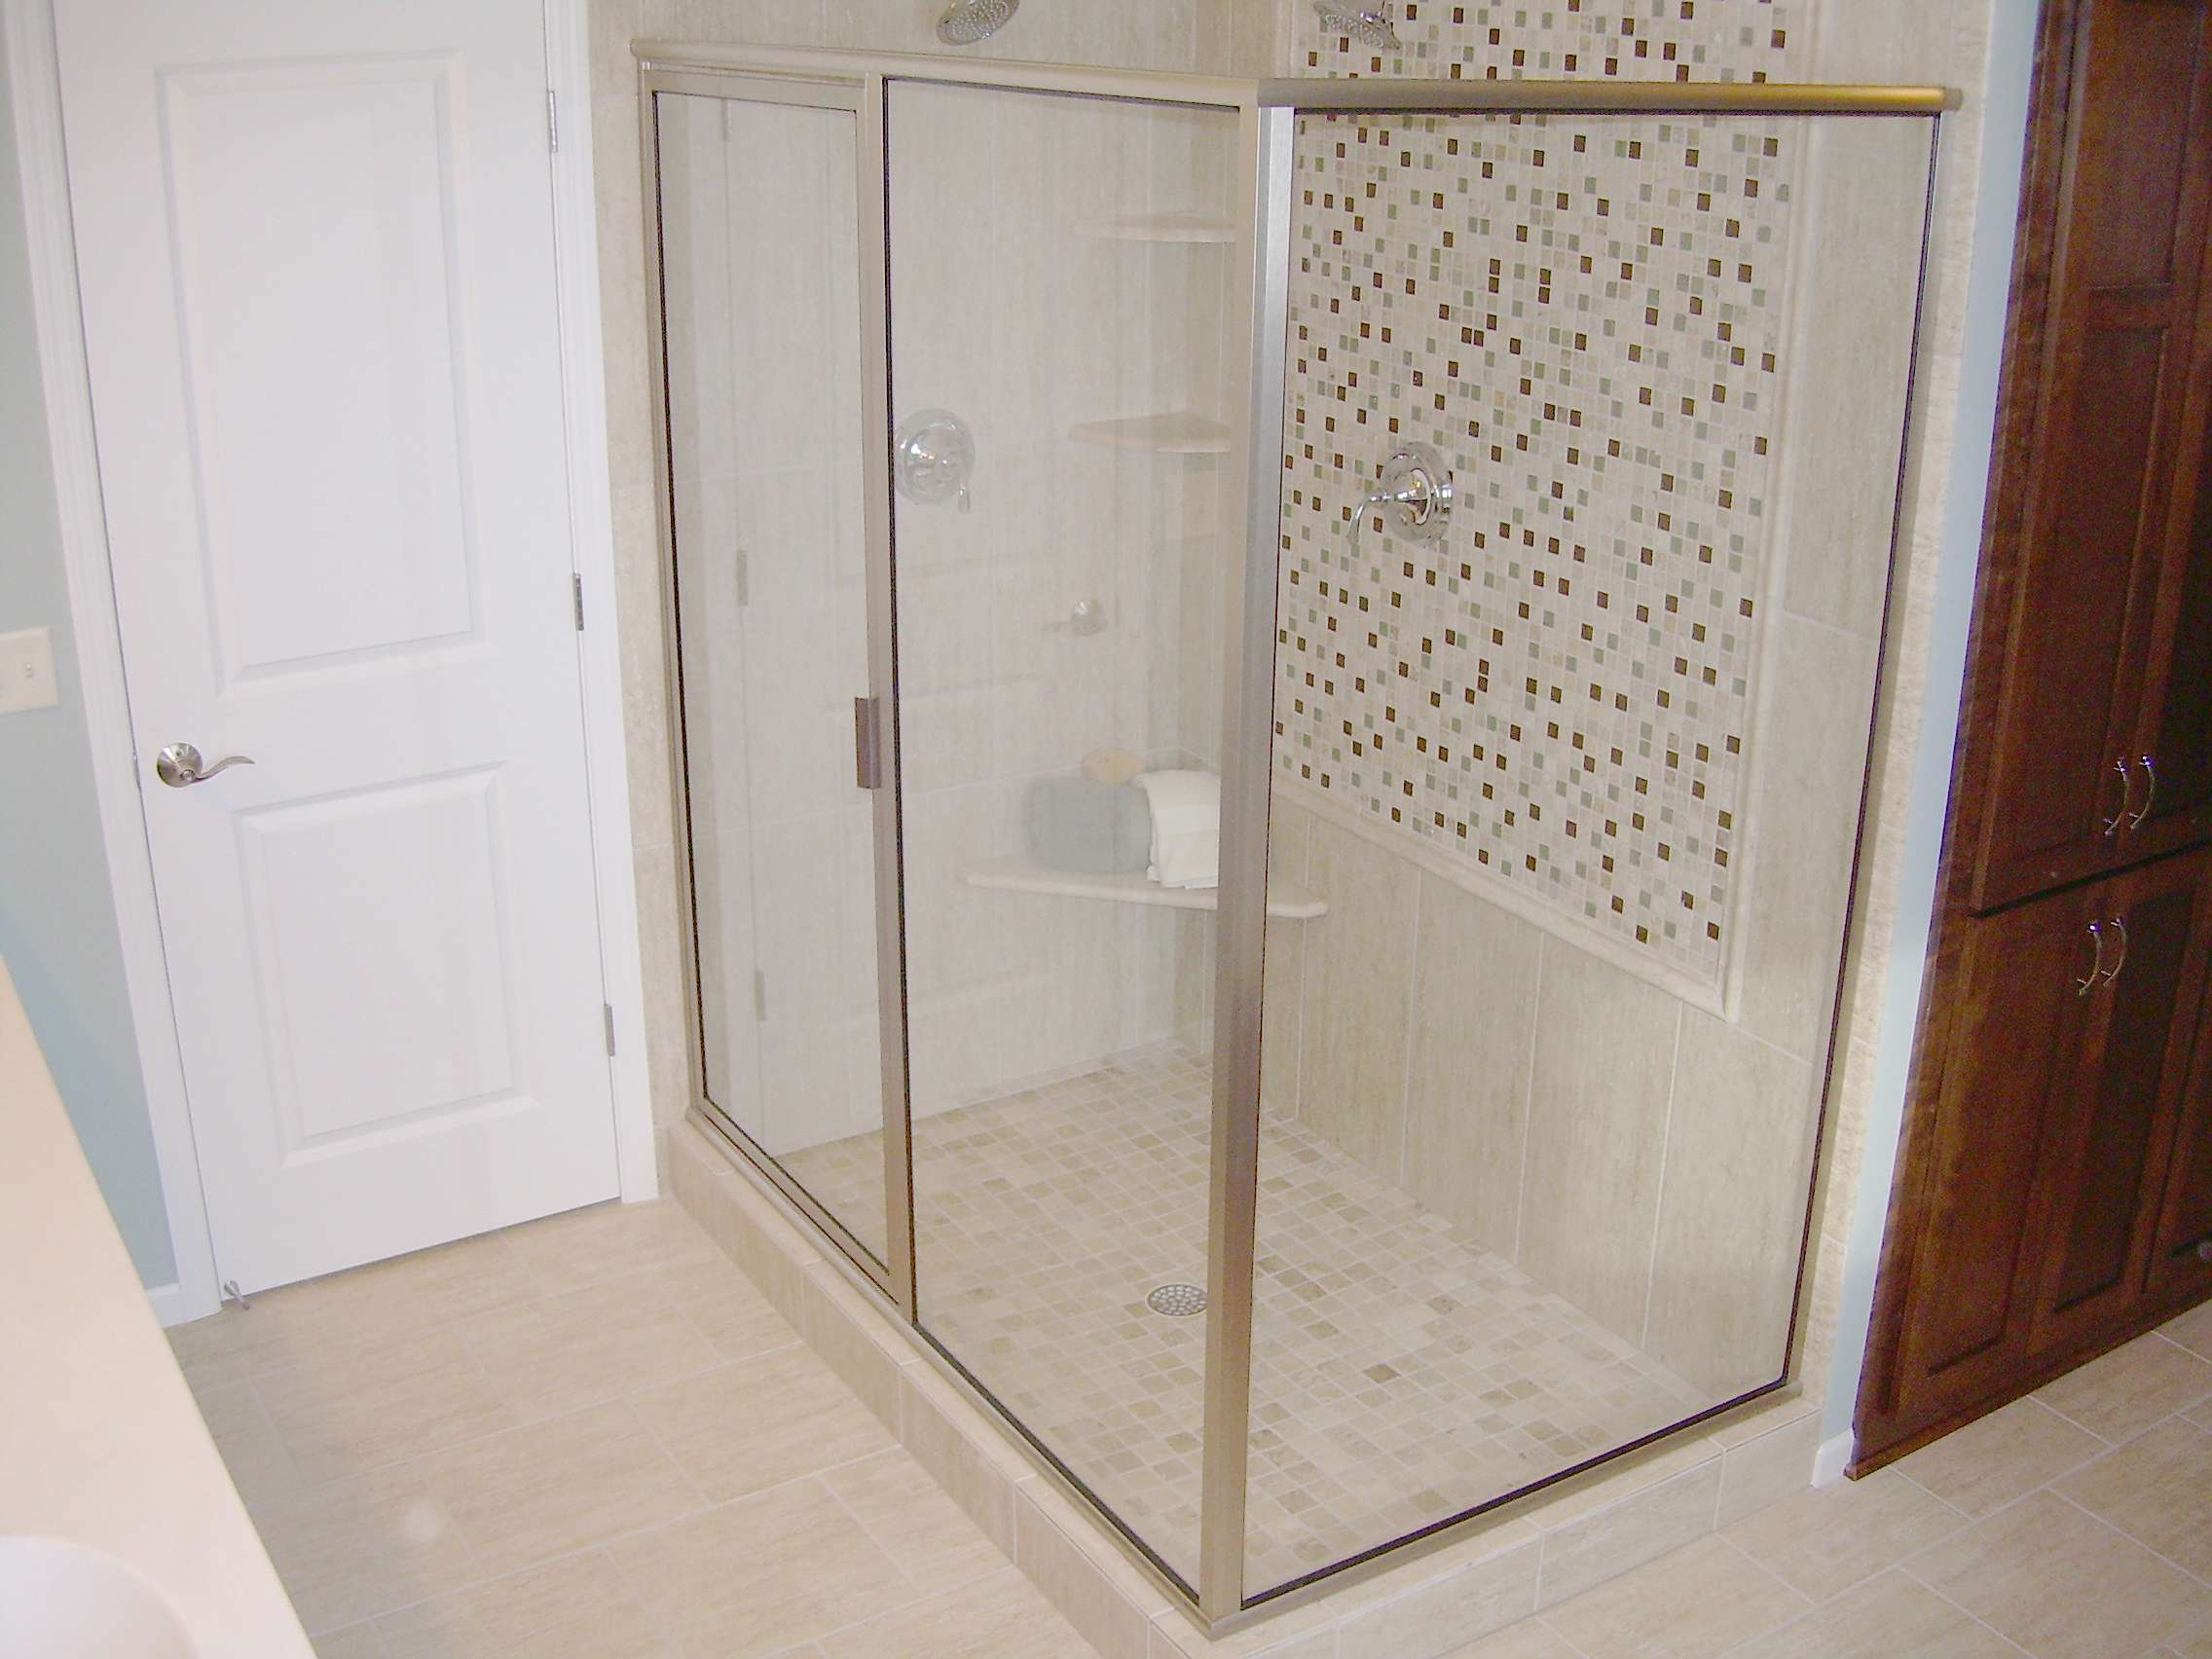 Framed Shower Enclosure Glass Panels White Wooden Bathroom